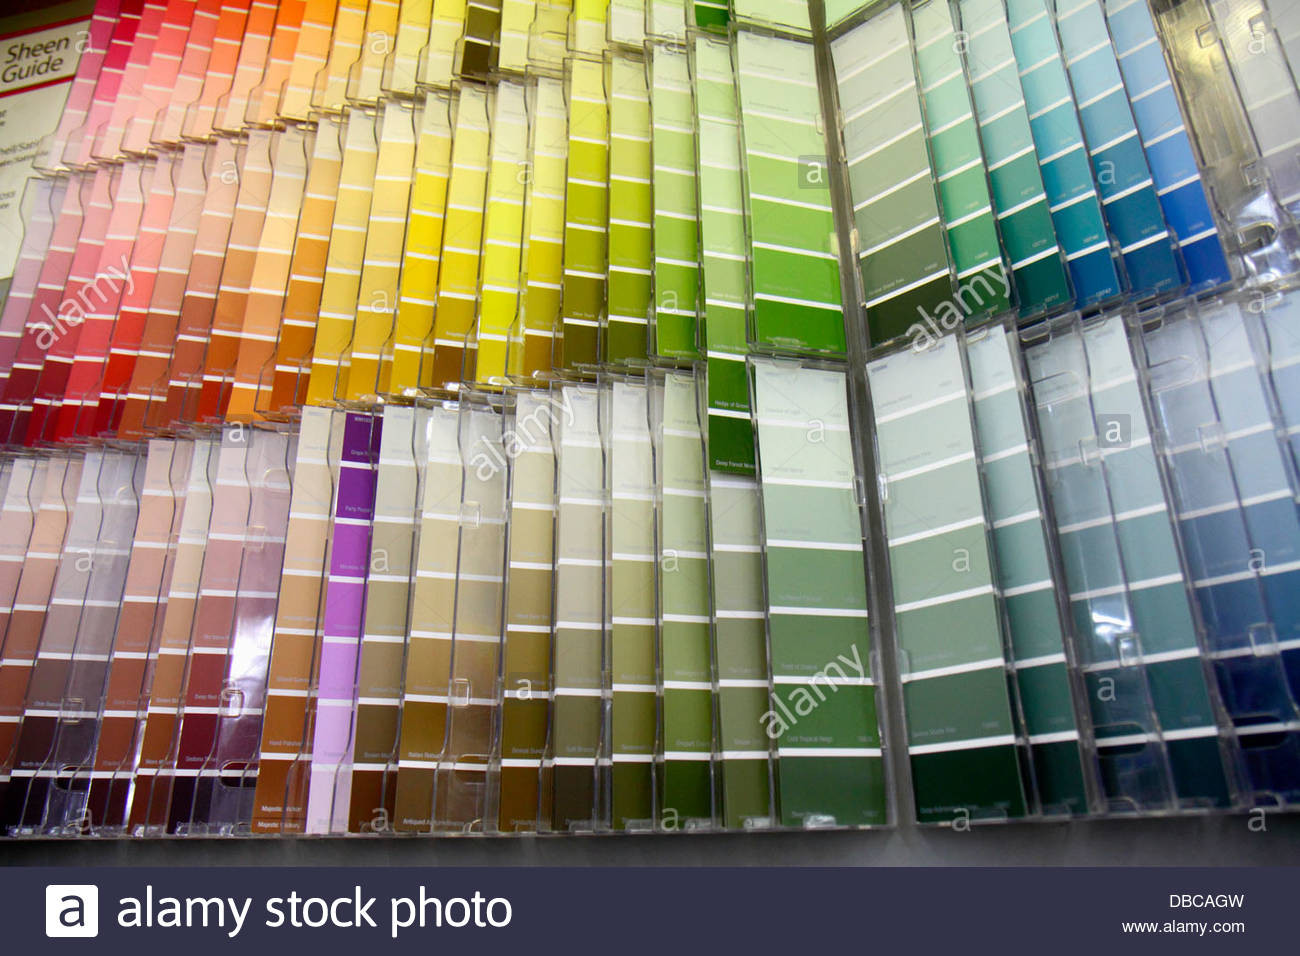 Best ideas about Walmart Paint Colors . Save or Pin Florida Hallandale Beach Walmart Wal Mart retail display Now.